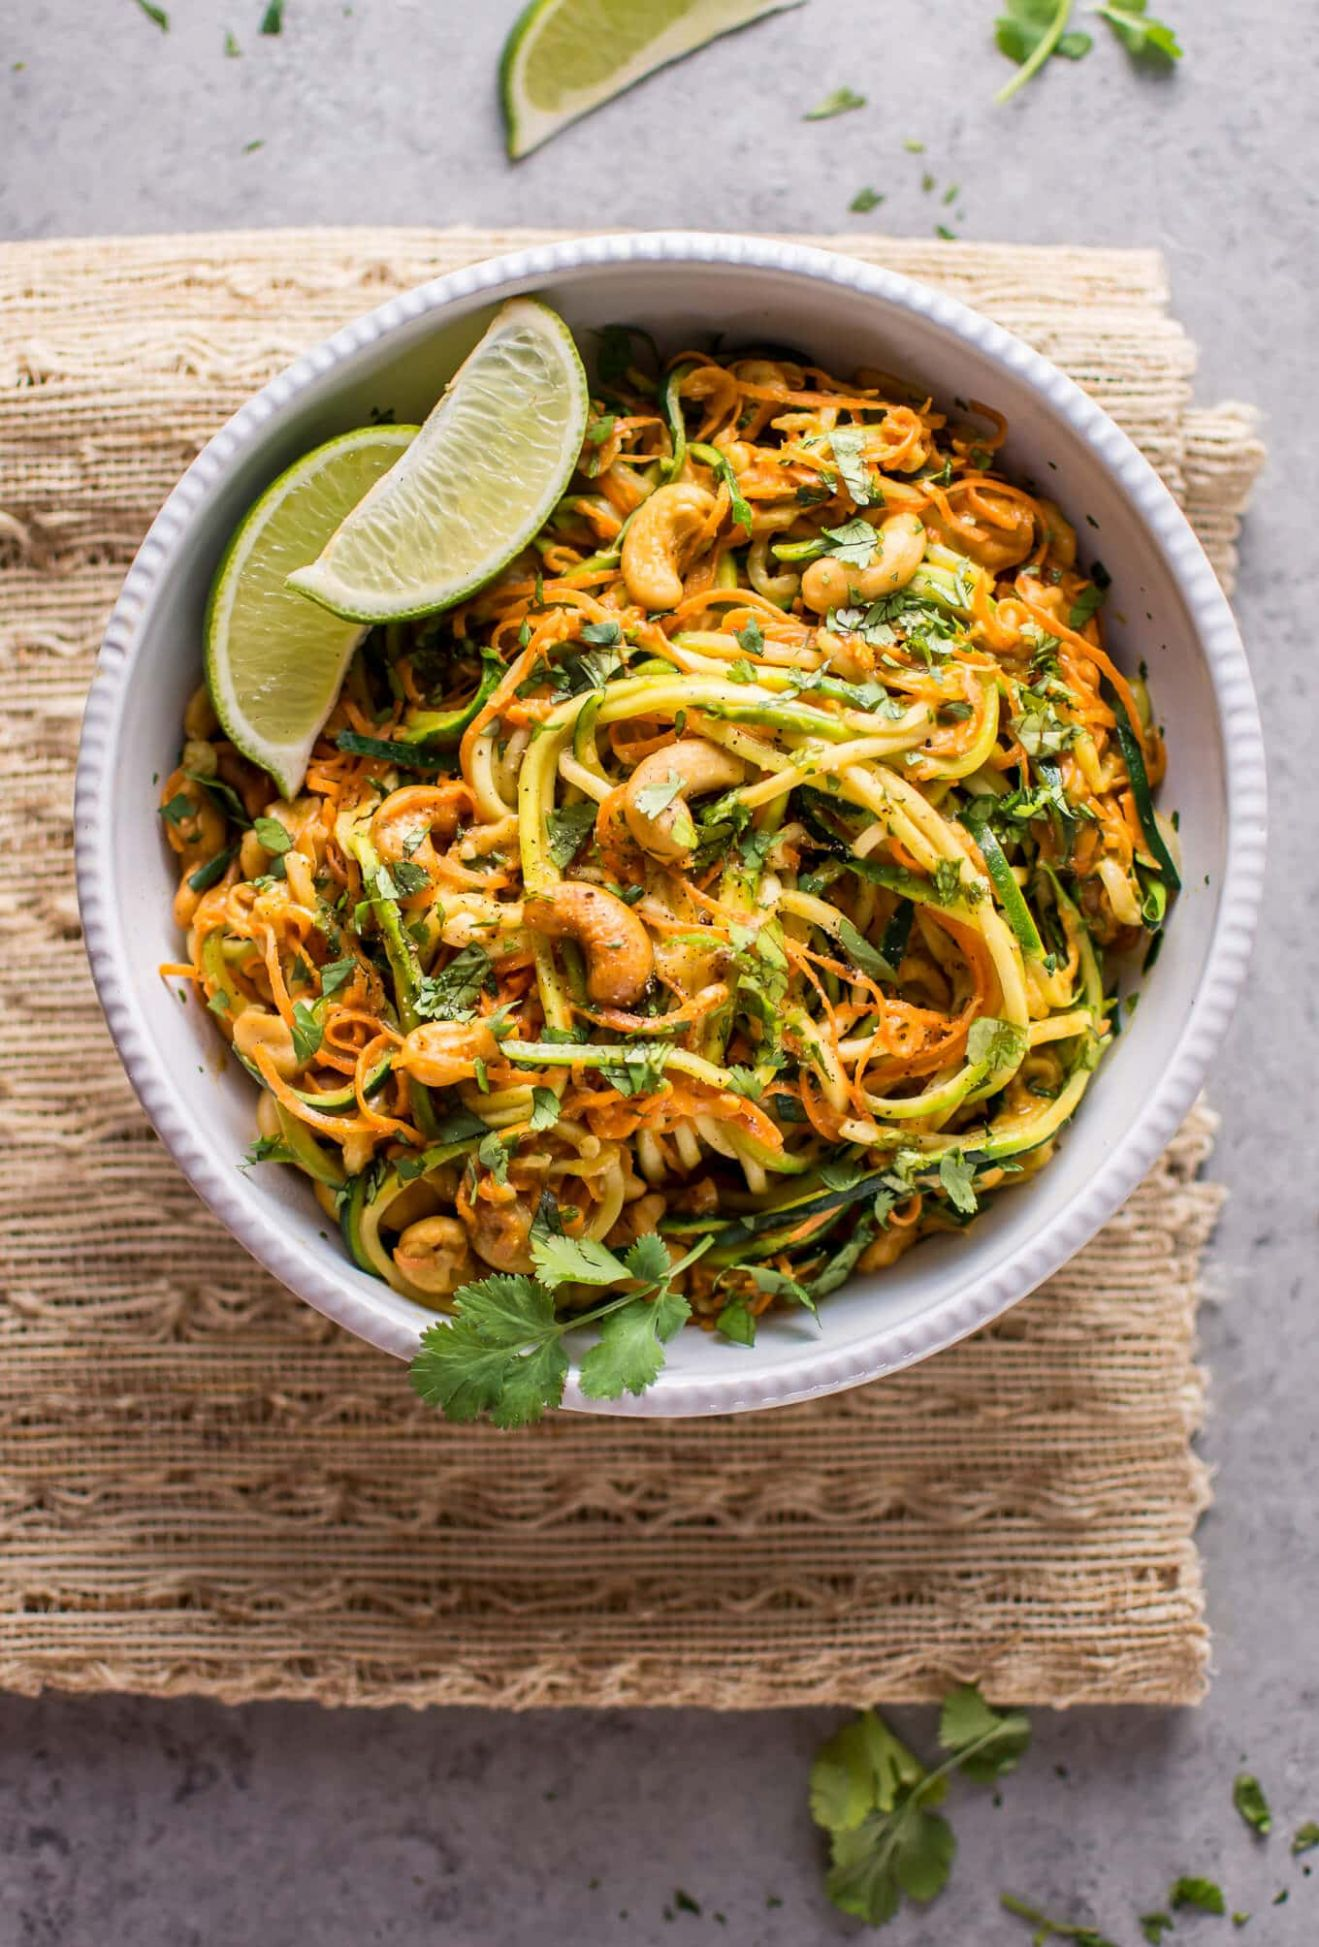 10 Minute Garlic Lime Cashew Zoodles - Healthy Recipes Zoodles